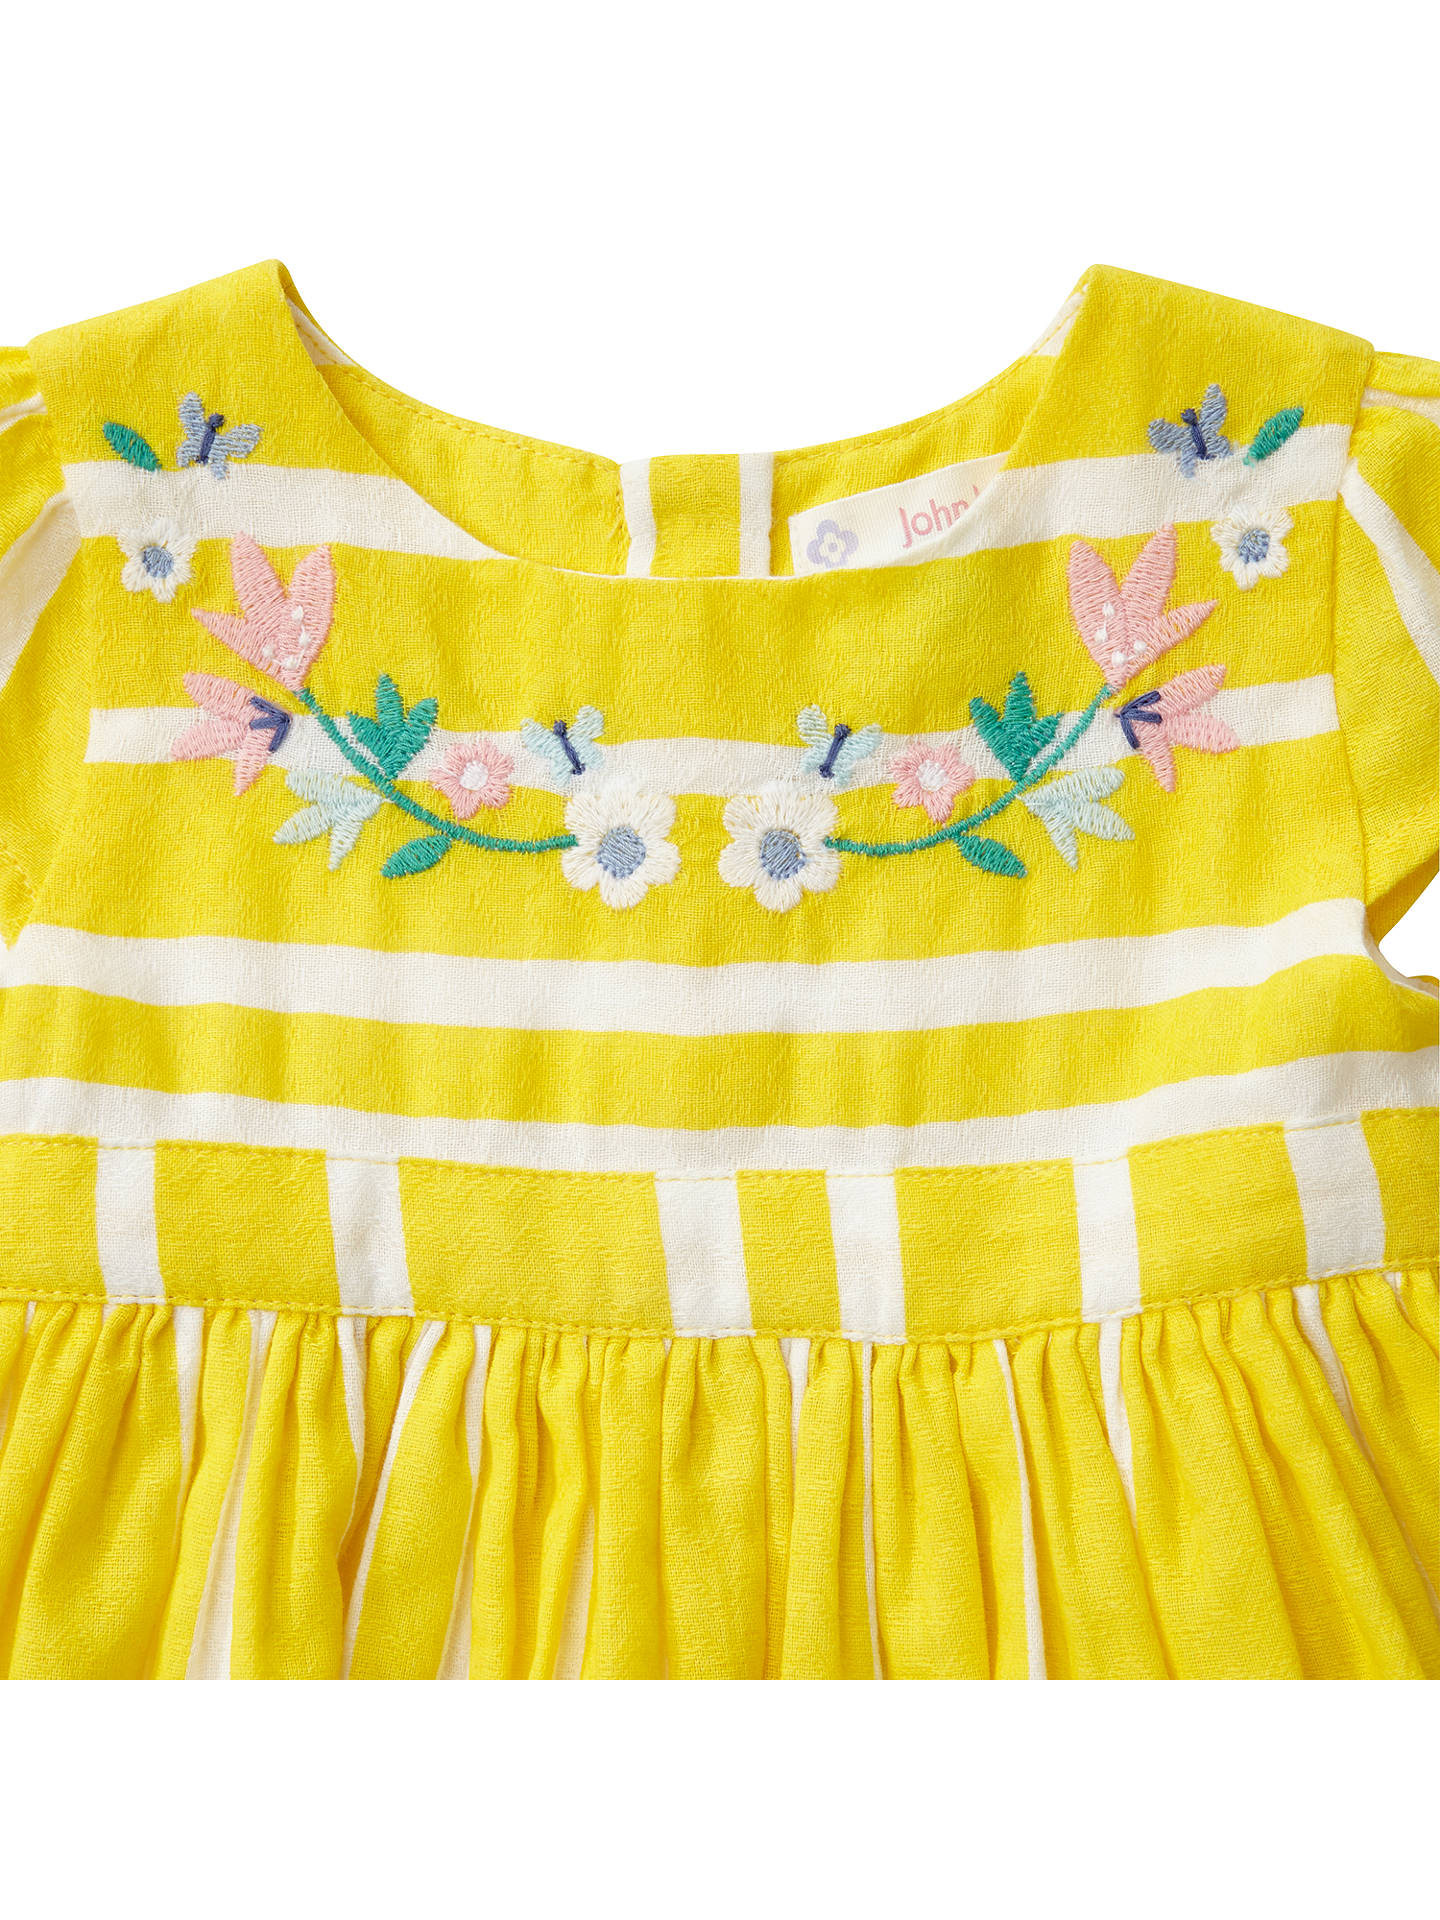 Buy John Lewis Baby Stripe Embroidered Dress, Yellow, Newborn Online at johnlewis.com